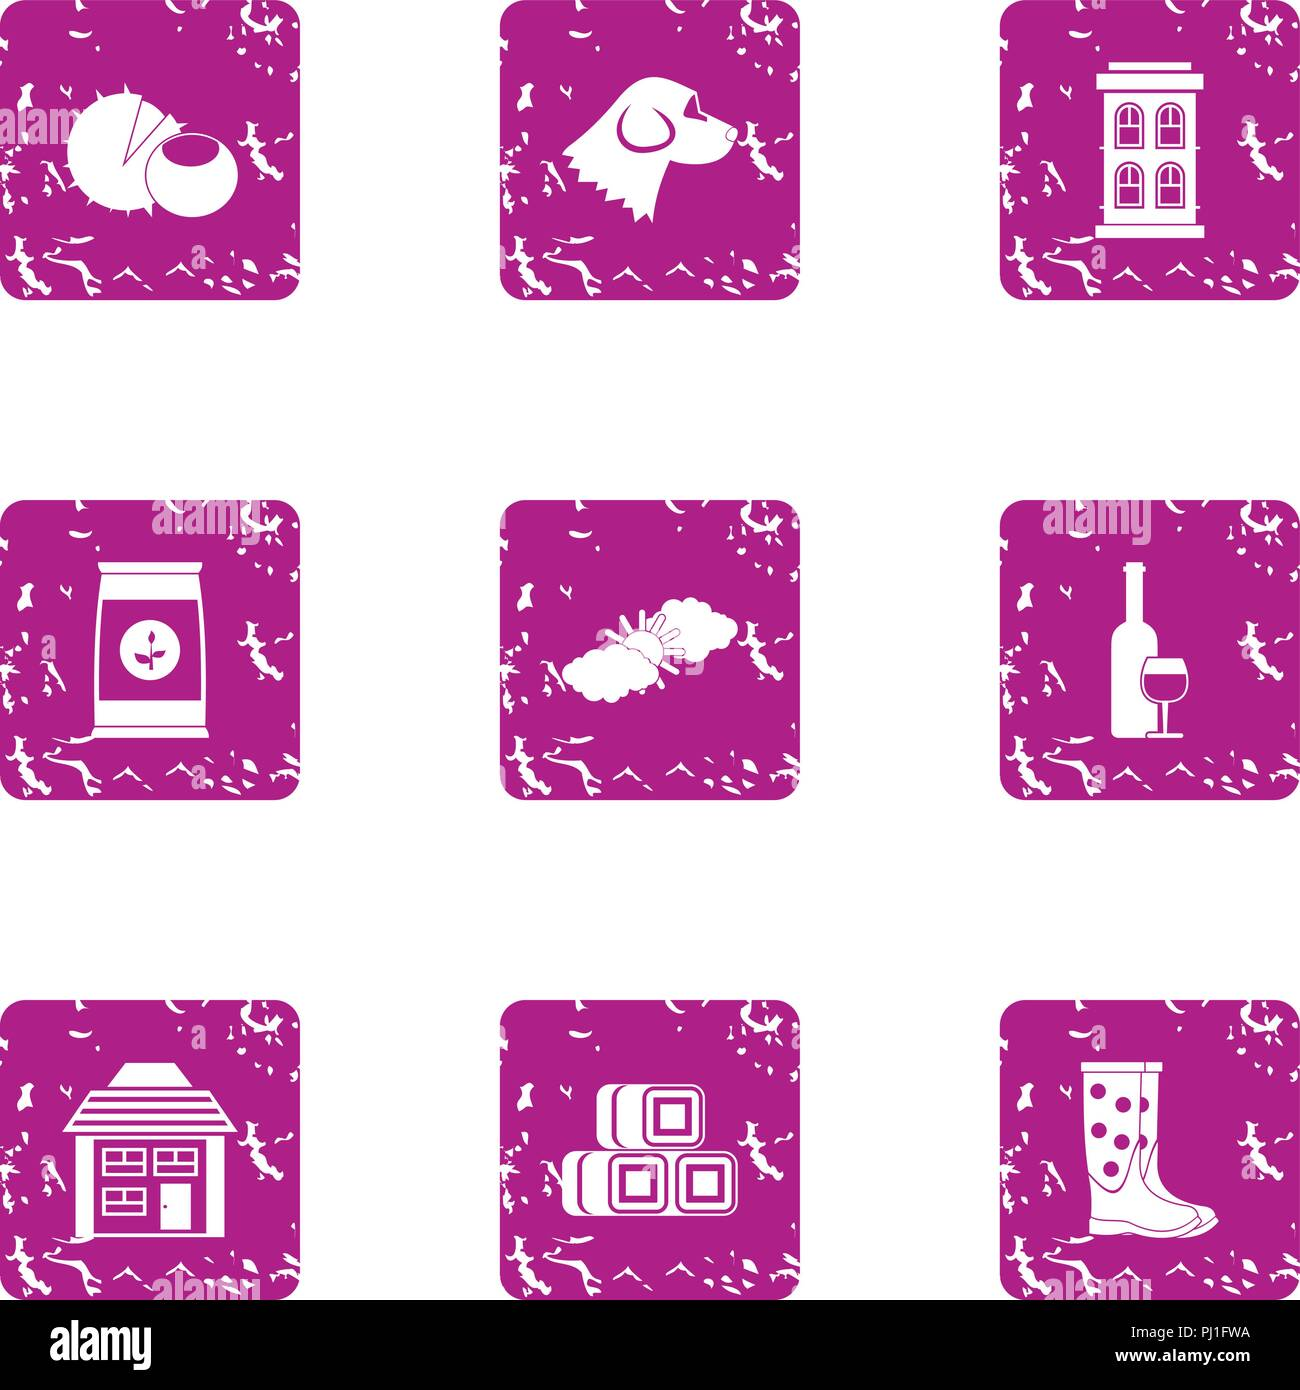 Private yard icons set, grunge style - Stock Vector